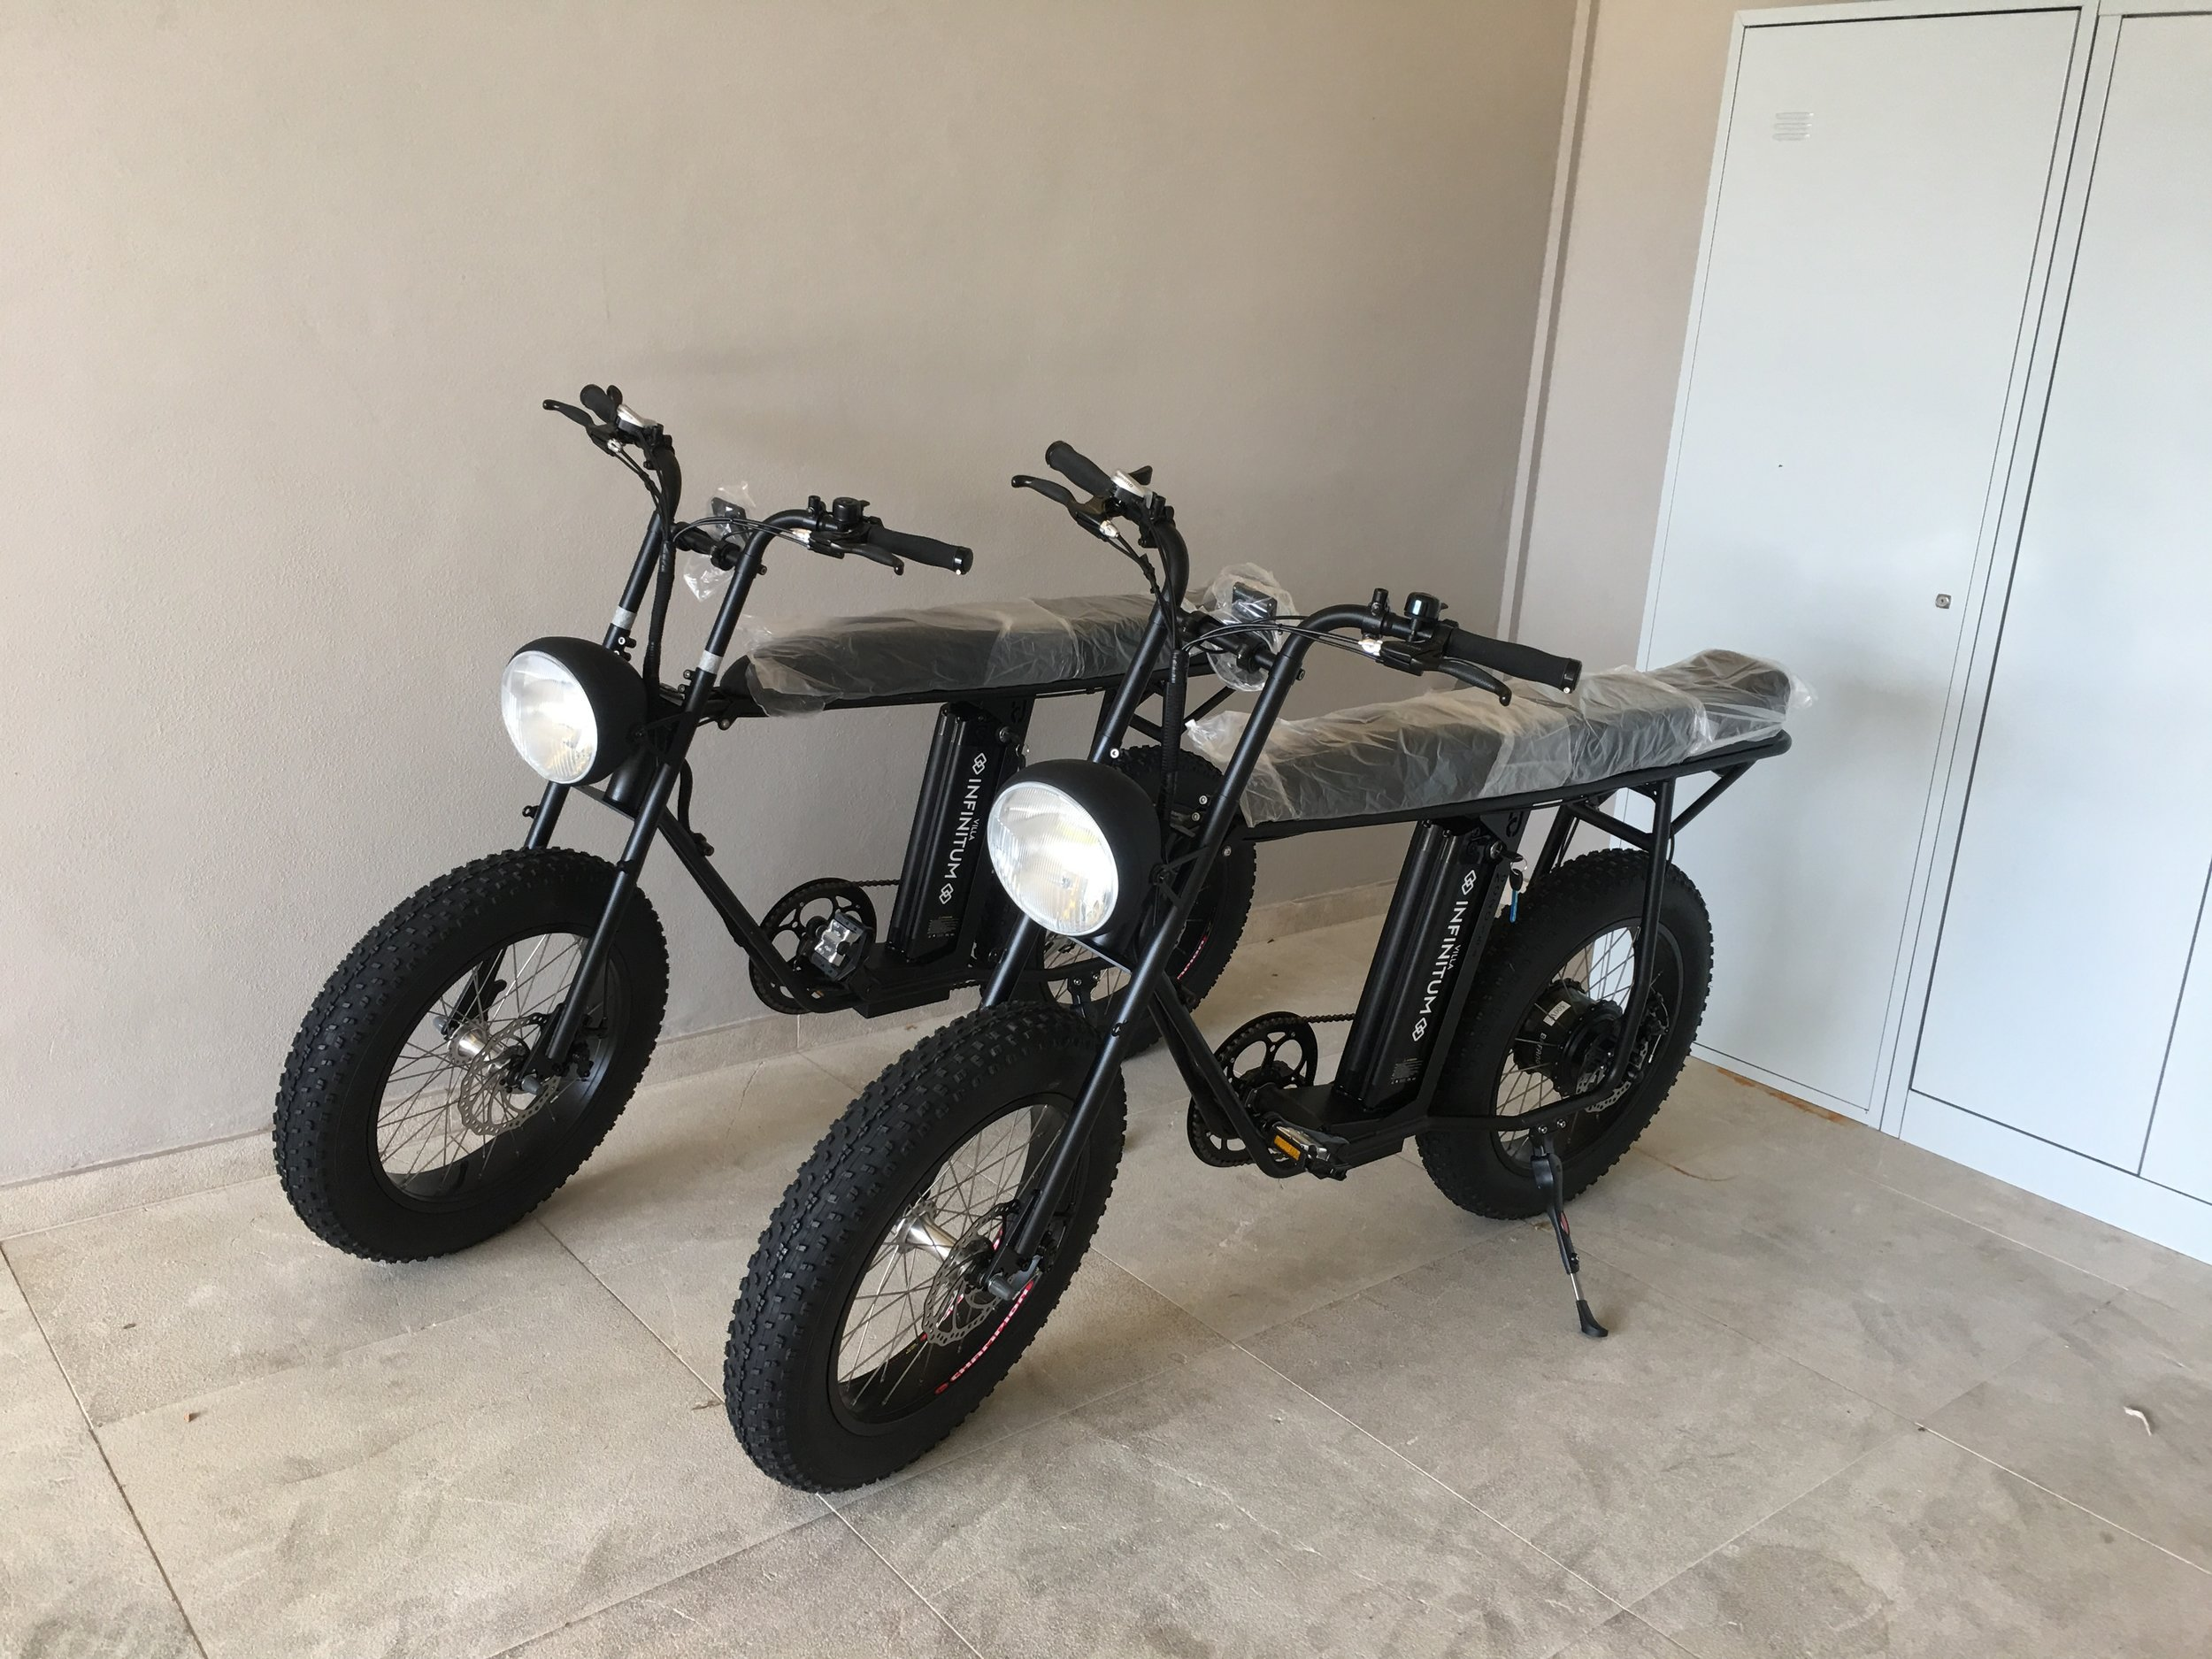 - Unimoke Package. Undoubtedly the best way to travel around, our Infinitum Unimoke bikes are great and fun for all the family and eco friendly.